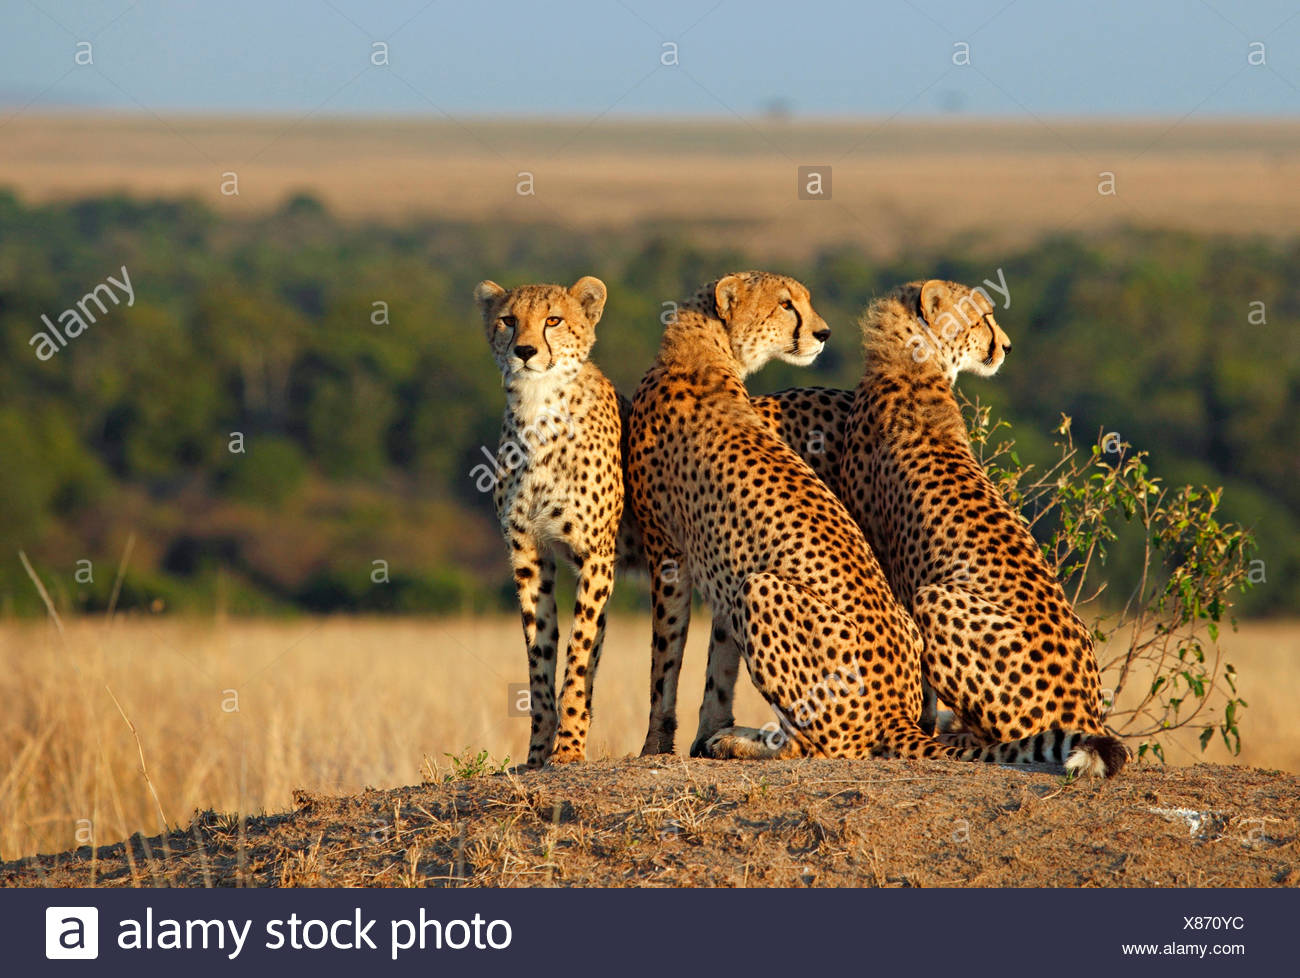 cheetah (Acinonyx jubatus), three cheetahs look out, Kenya, Masai Mara National Park - Stock Image